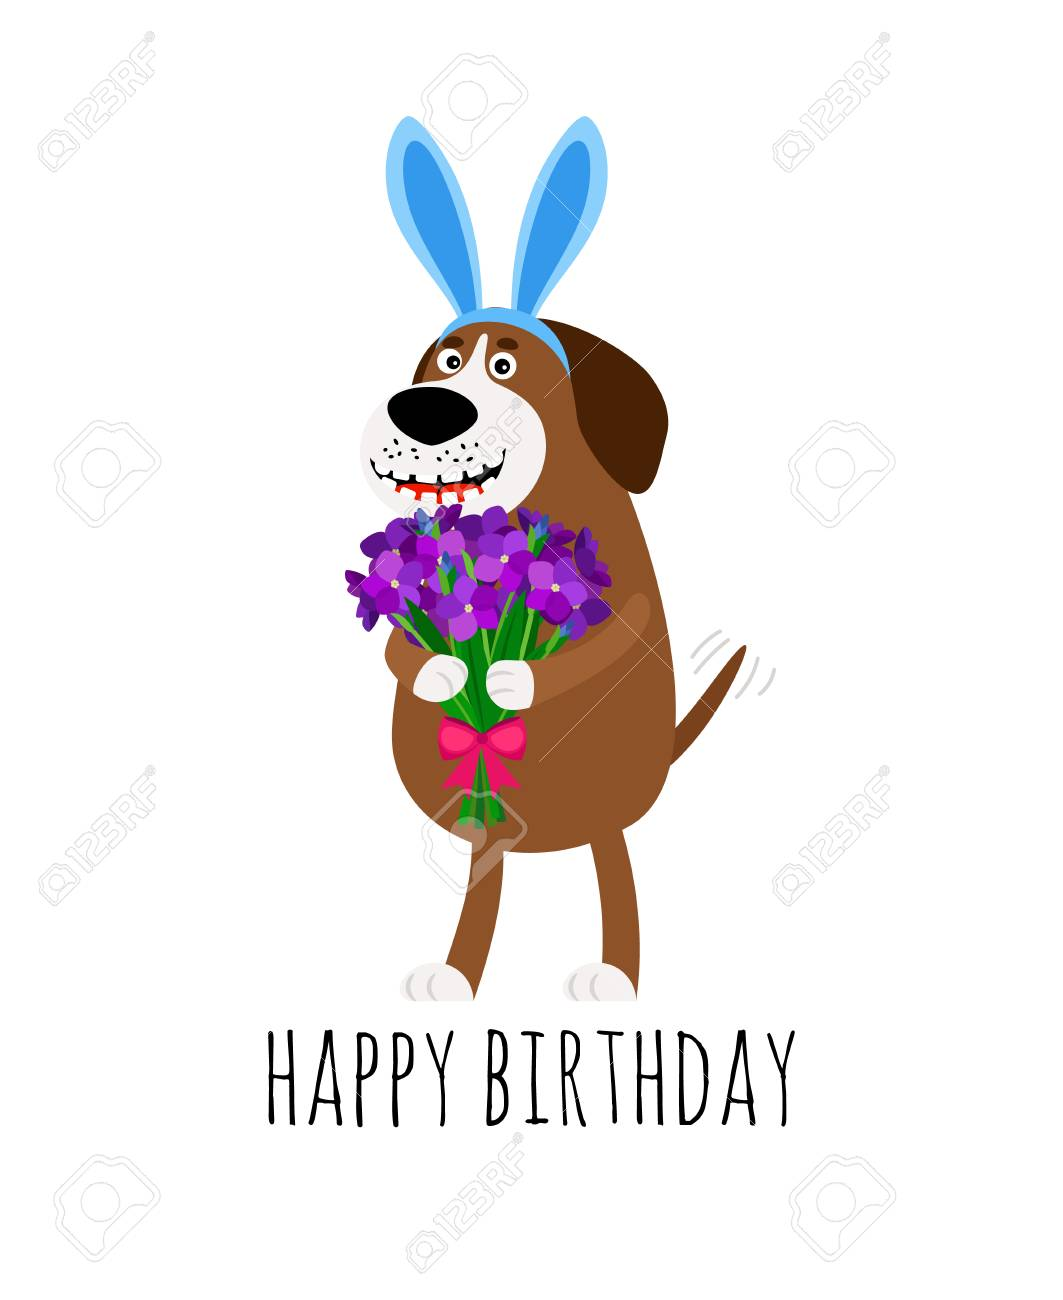 Happy Birthday Card With Cartoon Dog In Rabbit Ear Headband Holding Flower Bouquet Vector Illustration